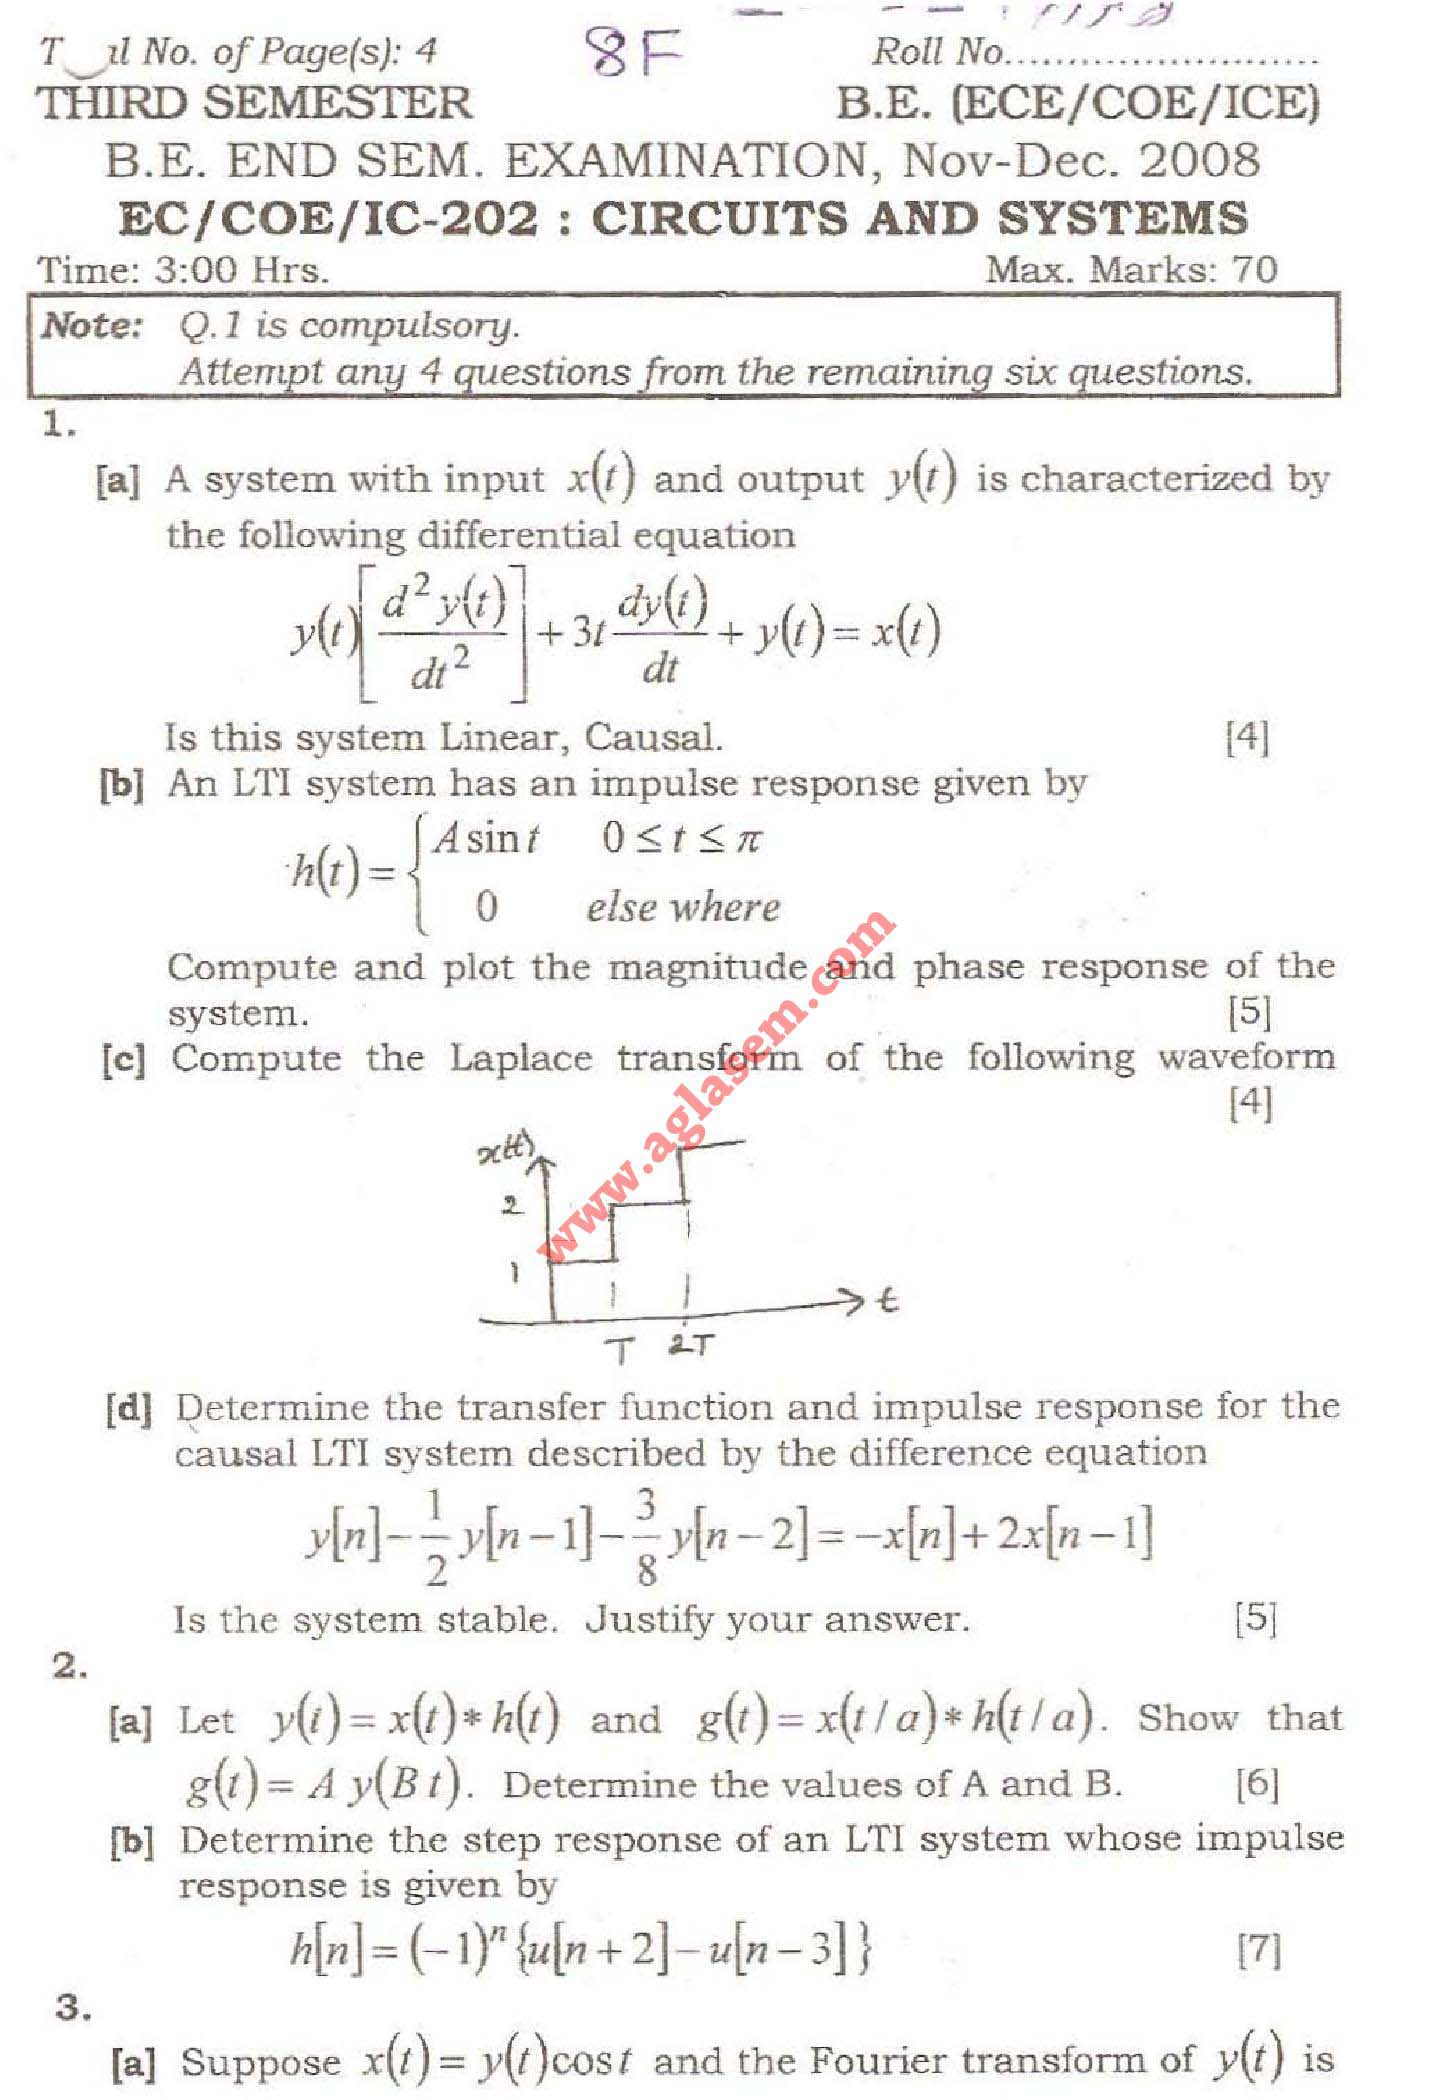 NSIT Question Papers 2008 – 3 Semester - End Sem - EC-COE-IC-202